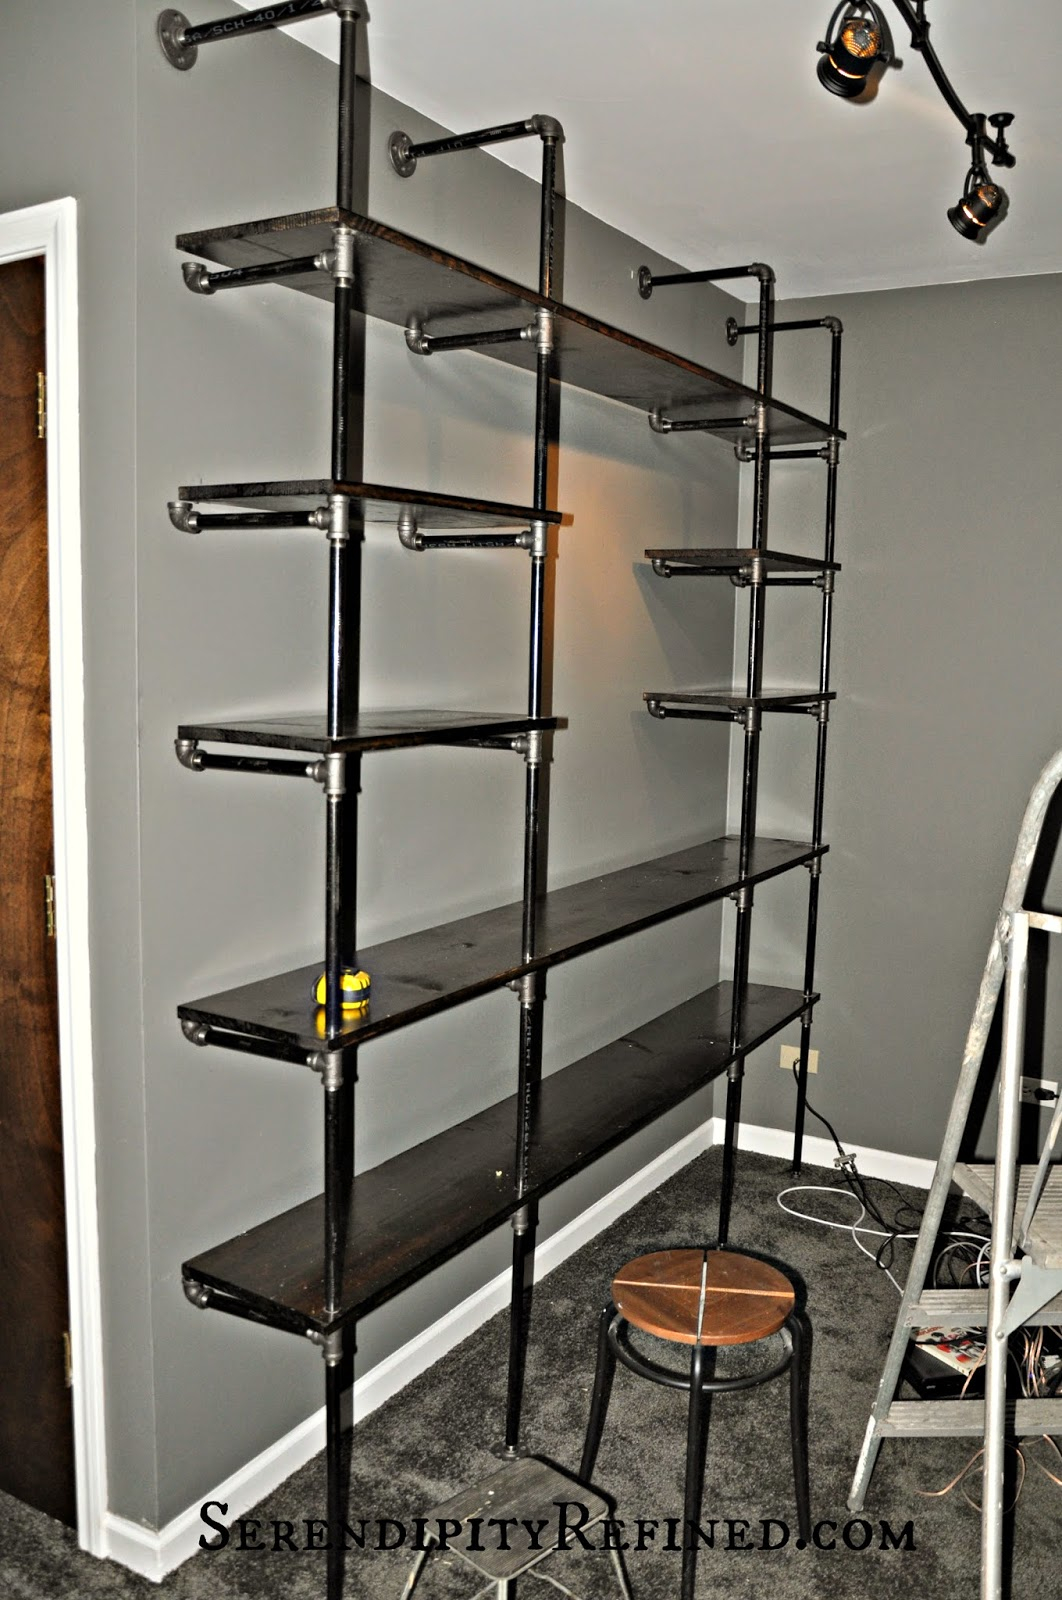 Serendipity Refined Blog Diy Industrial Pipe Shelves For